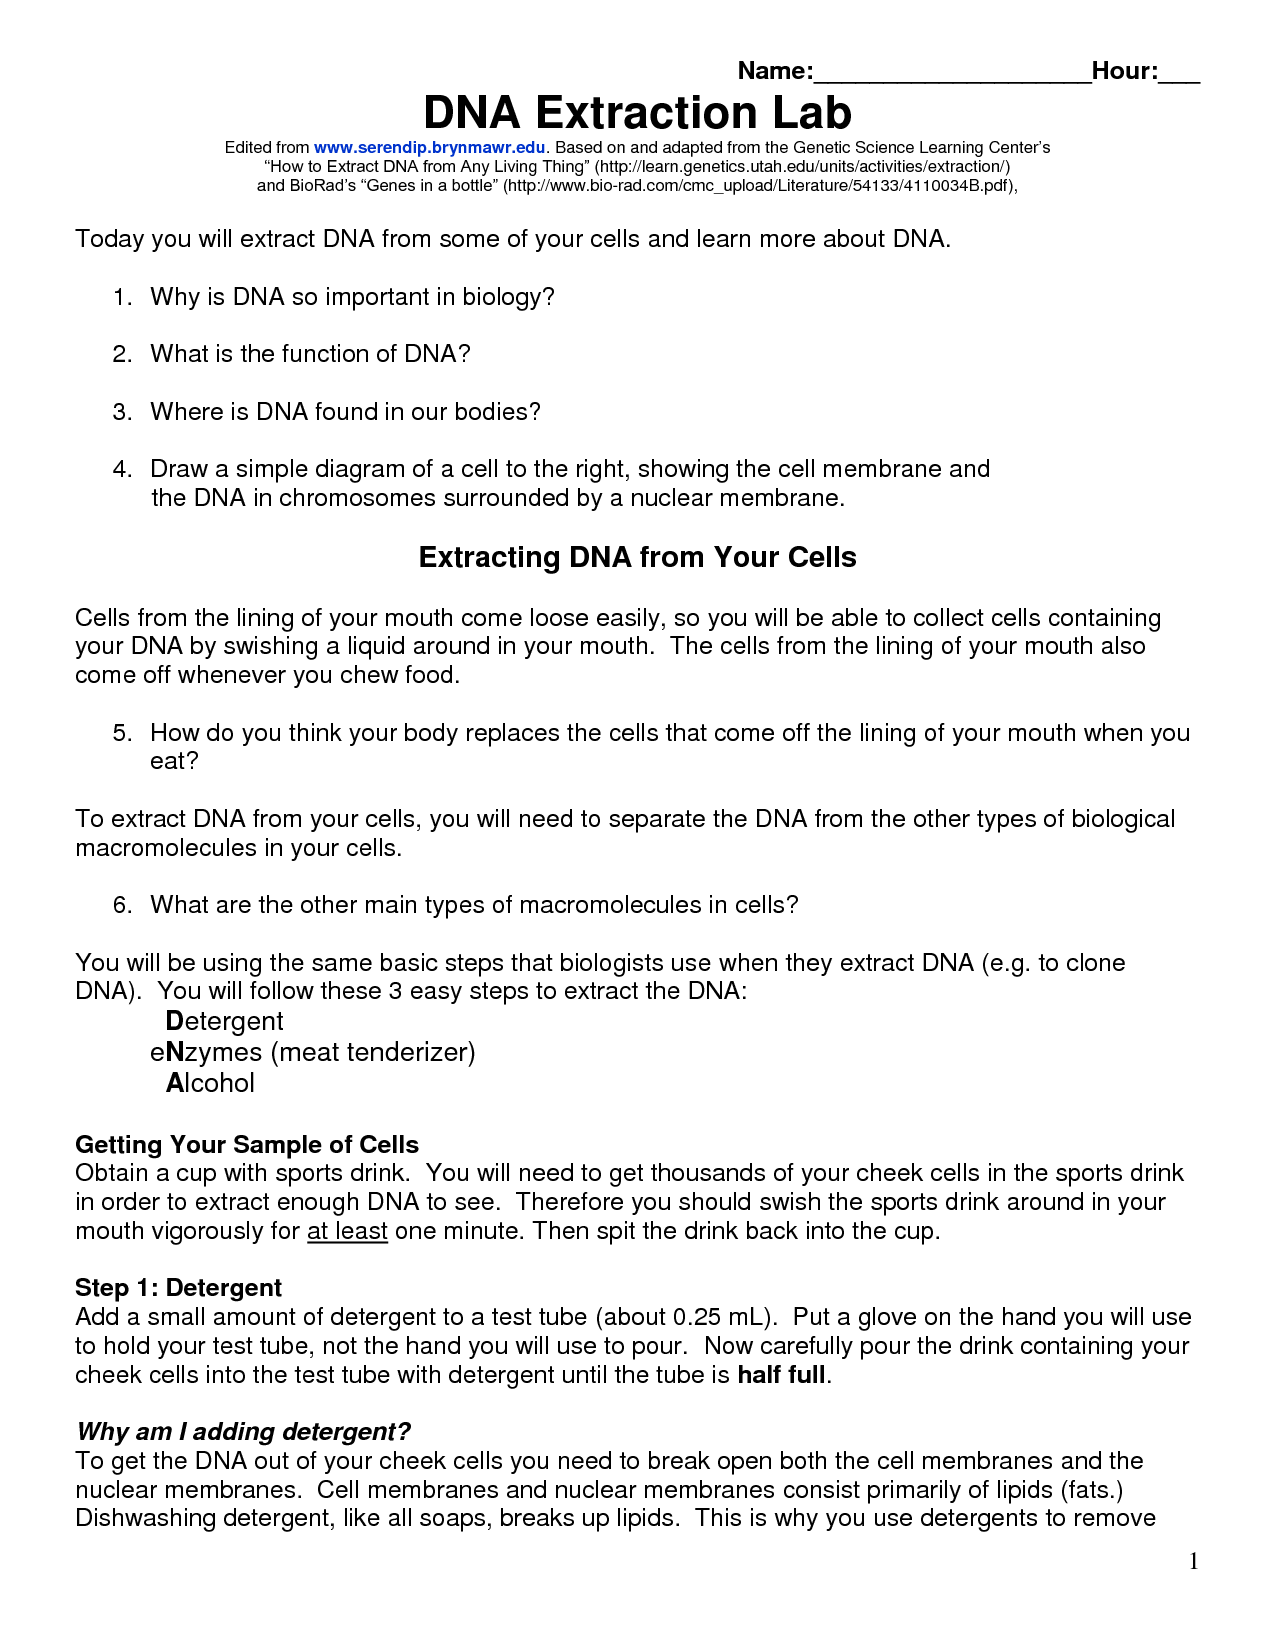 Dna Extraction Worksheet Biological Science Picture